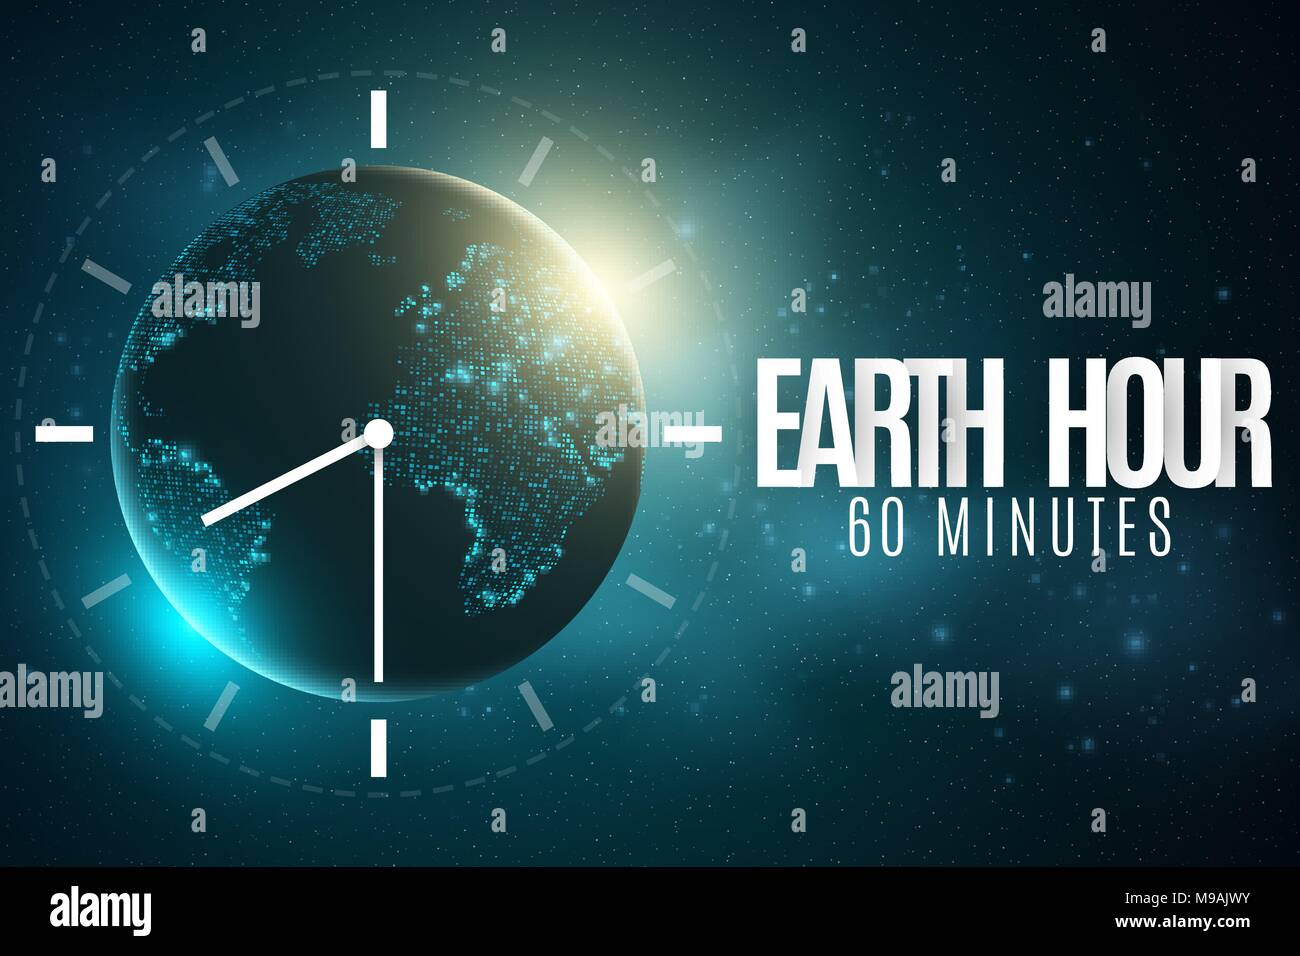 Earth hour futuristic planet earth 60 minutes without electricity earth hour futuristic planet earth 60 minutes without electricity 3d paper letters sunrise global holiday clock go abstract world map starry s gumiabroncs